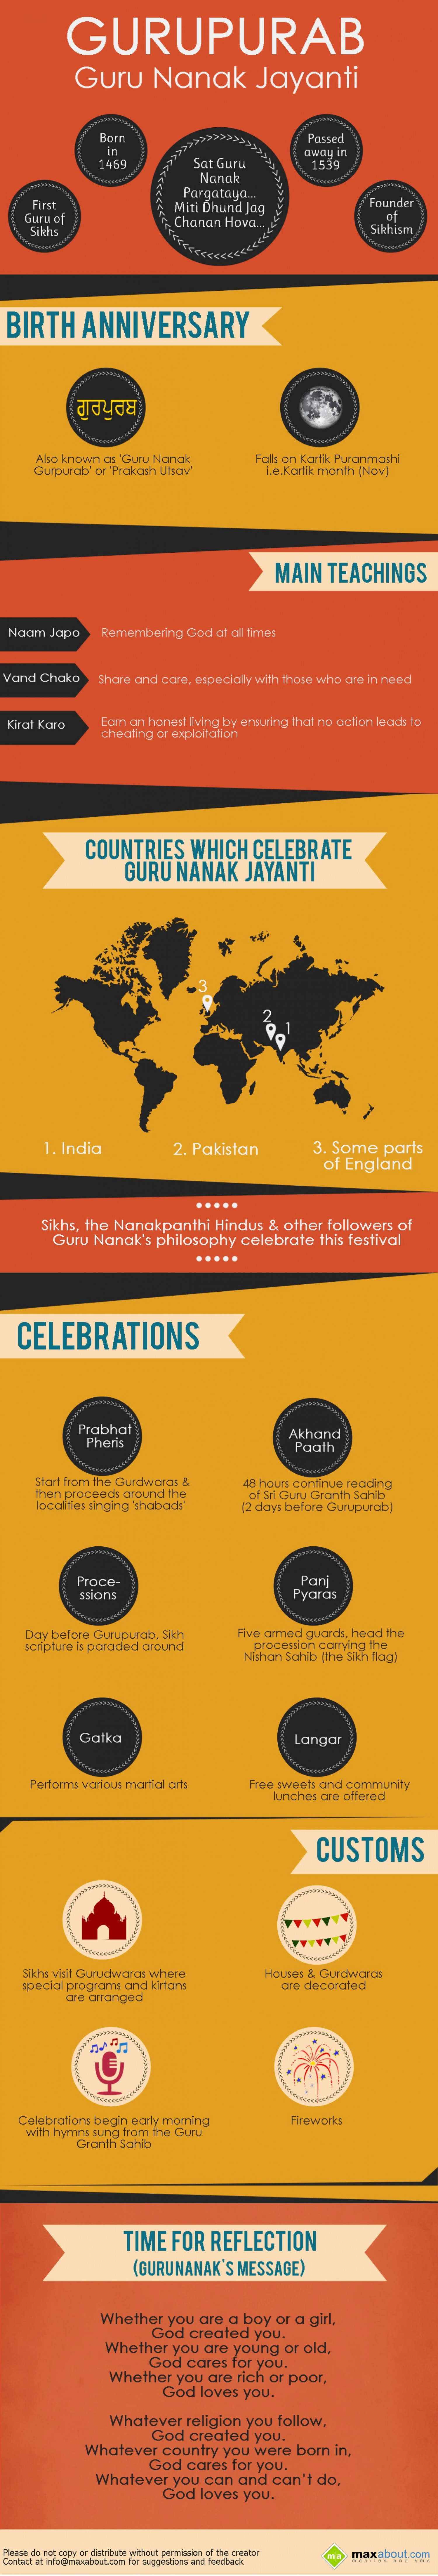 Interesting Facts About Guru Nanak Gurpurab! Infographic